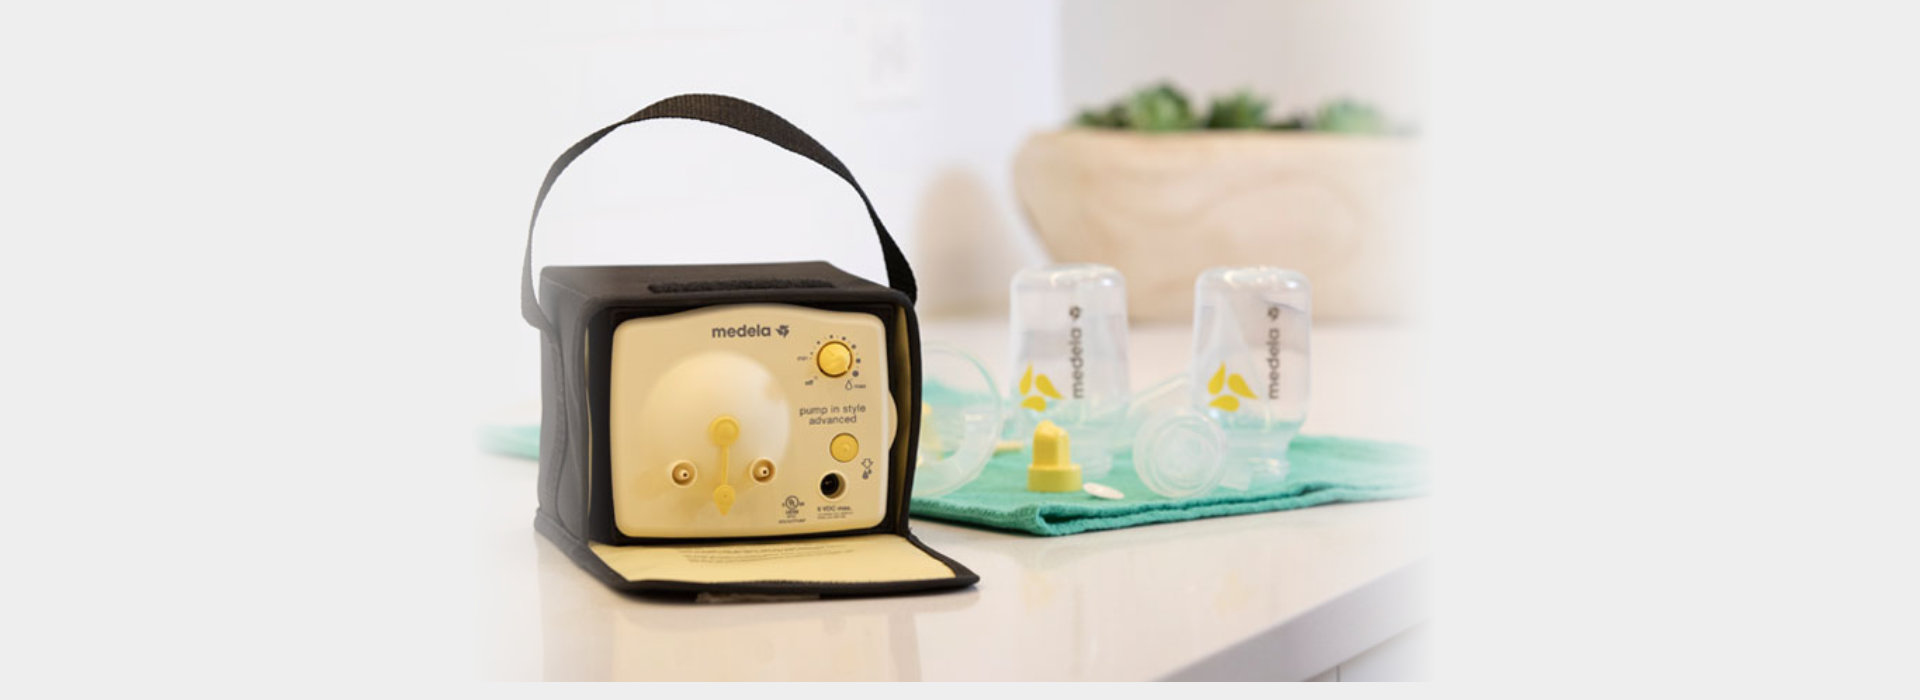 medela equipment